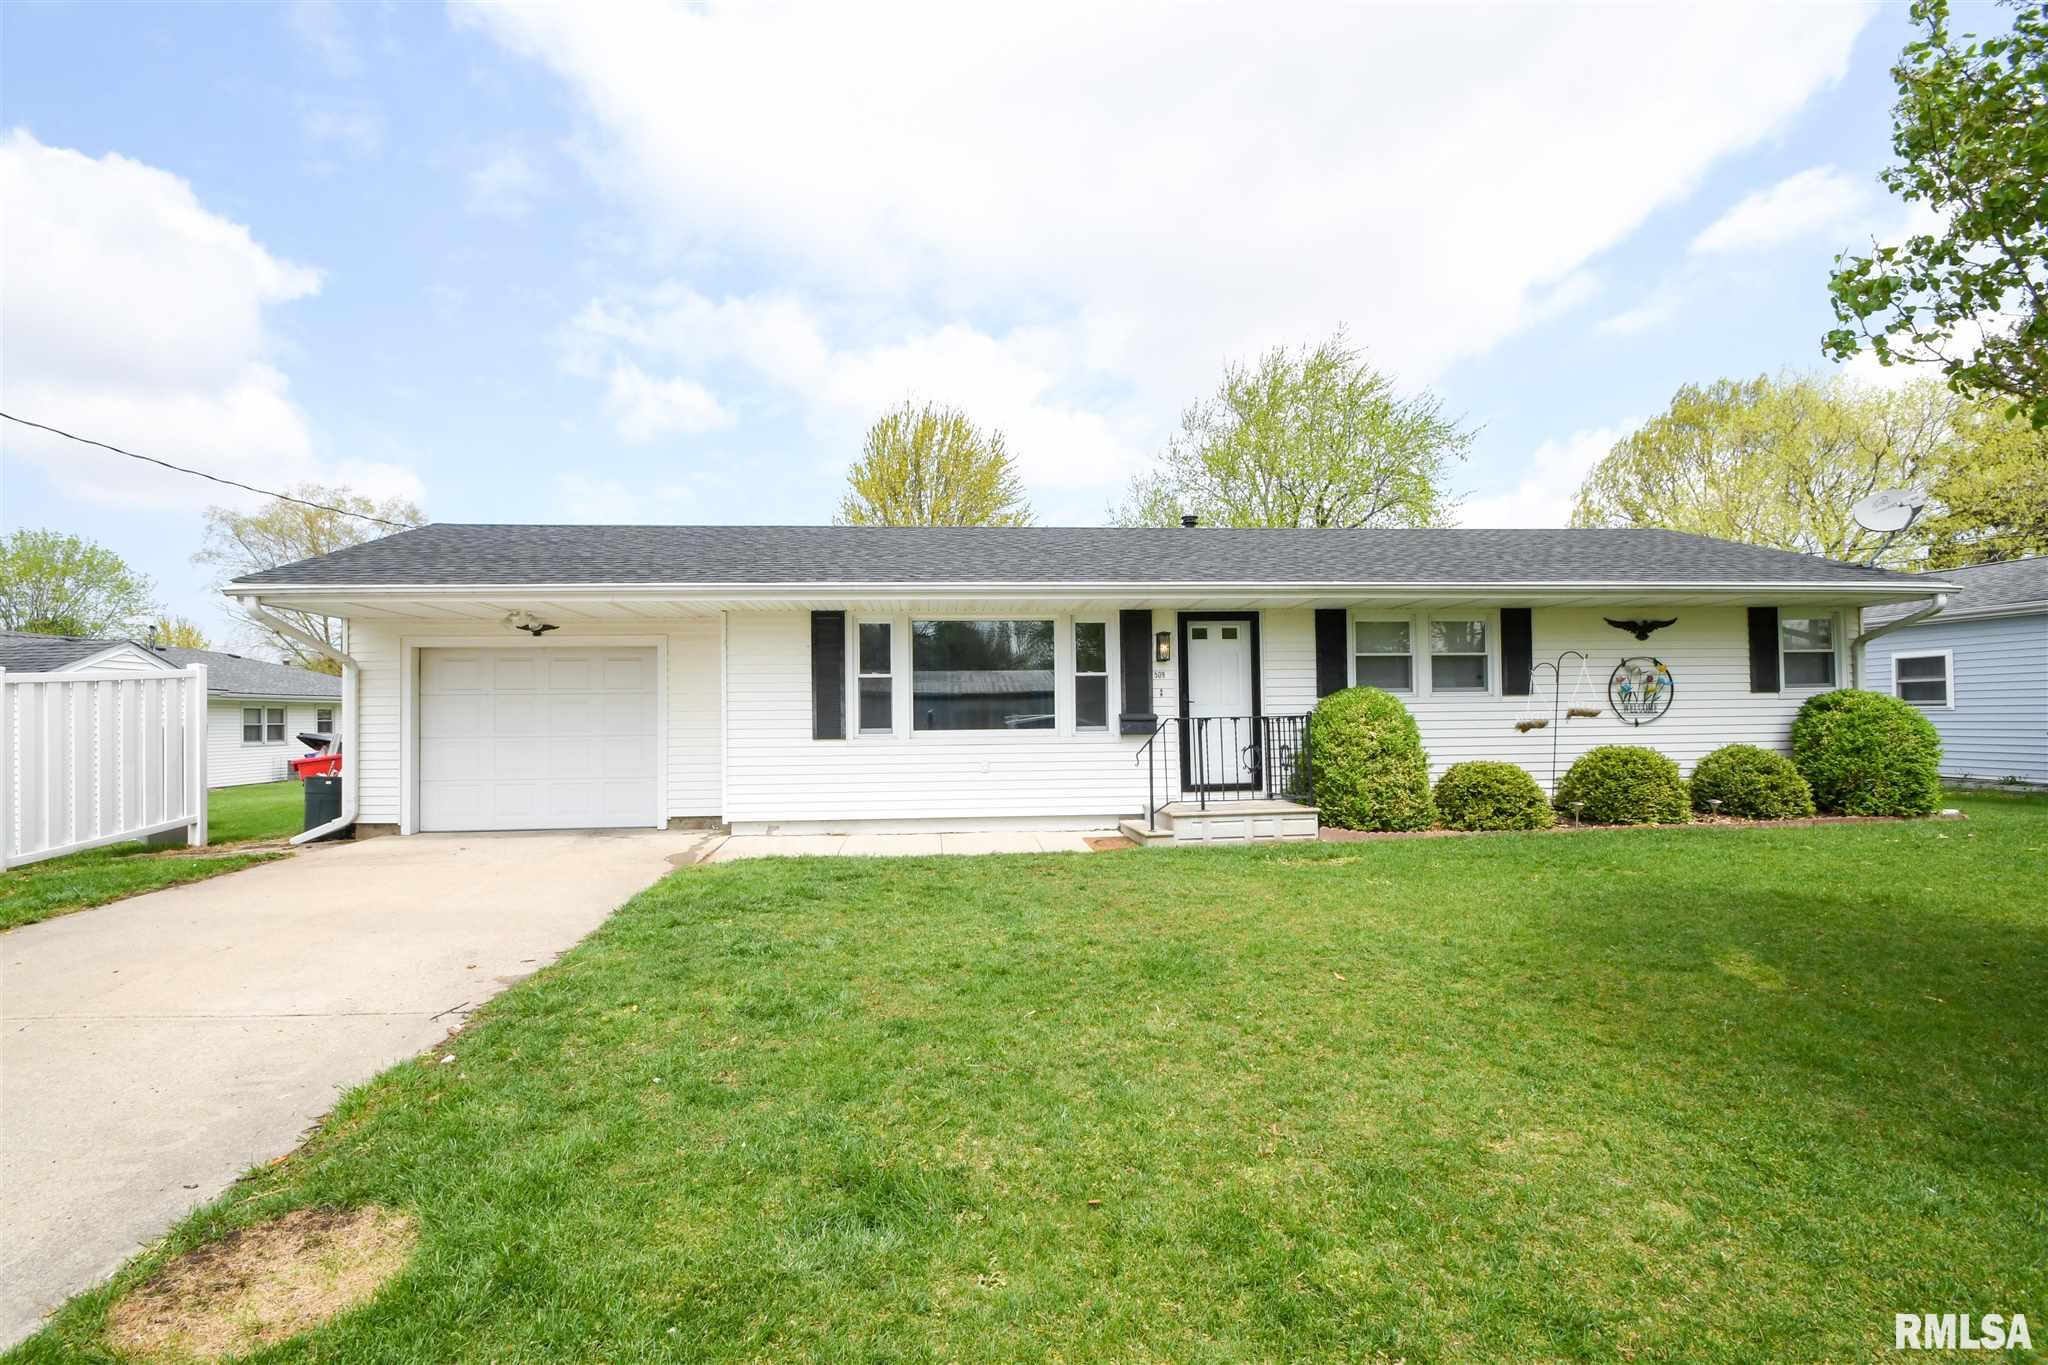 509 W BUTTERNUT Property Photo - Elmwood, IL real estate listing